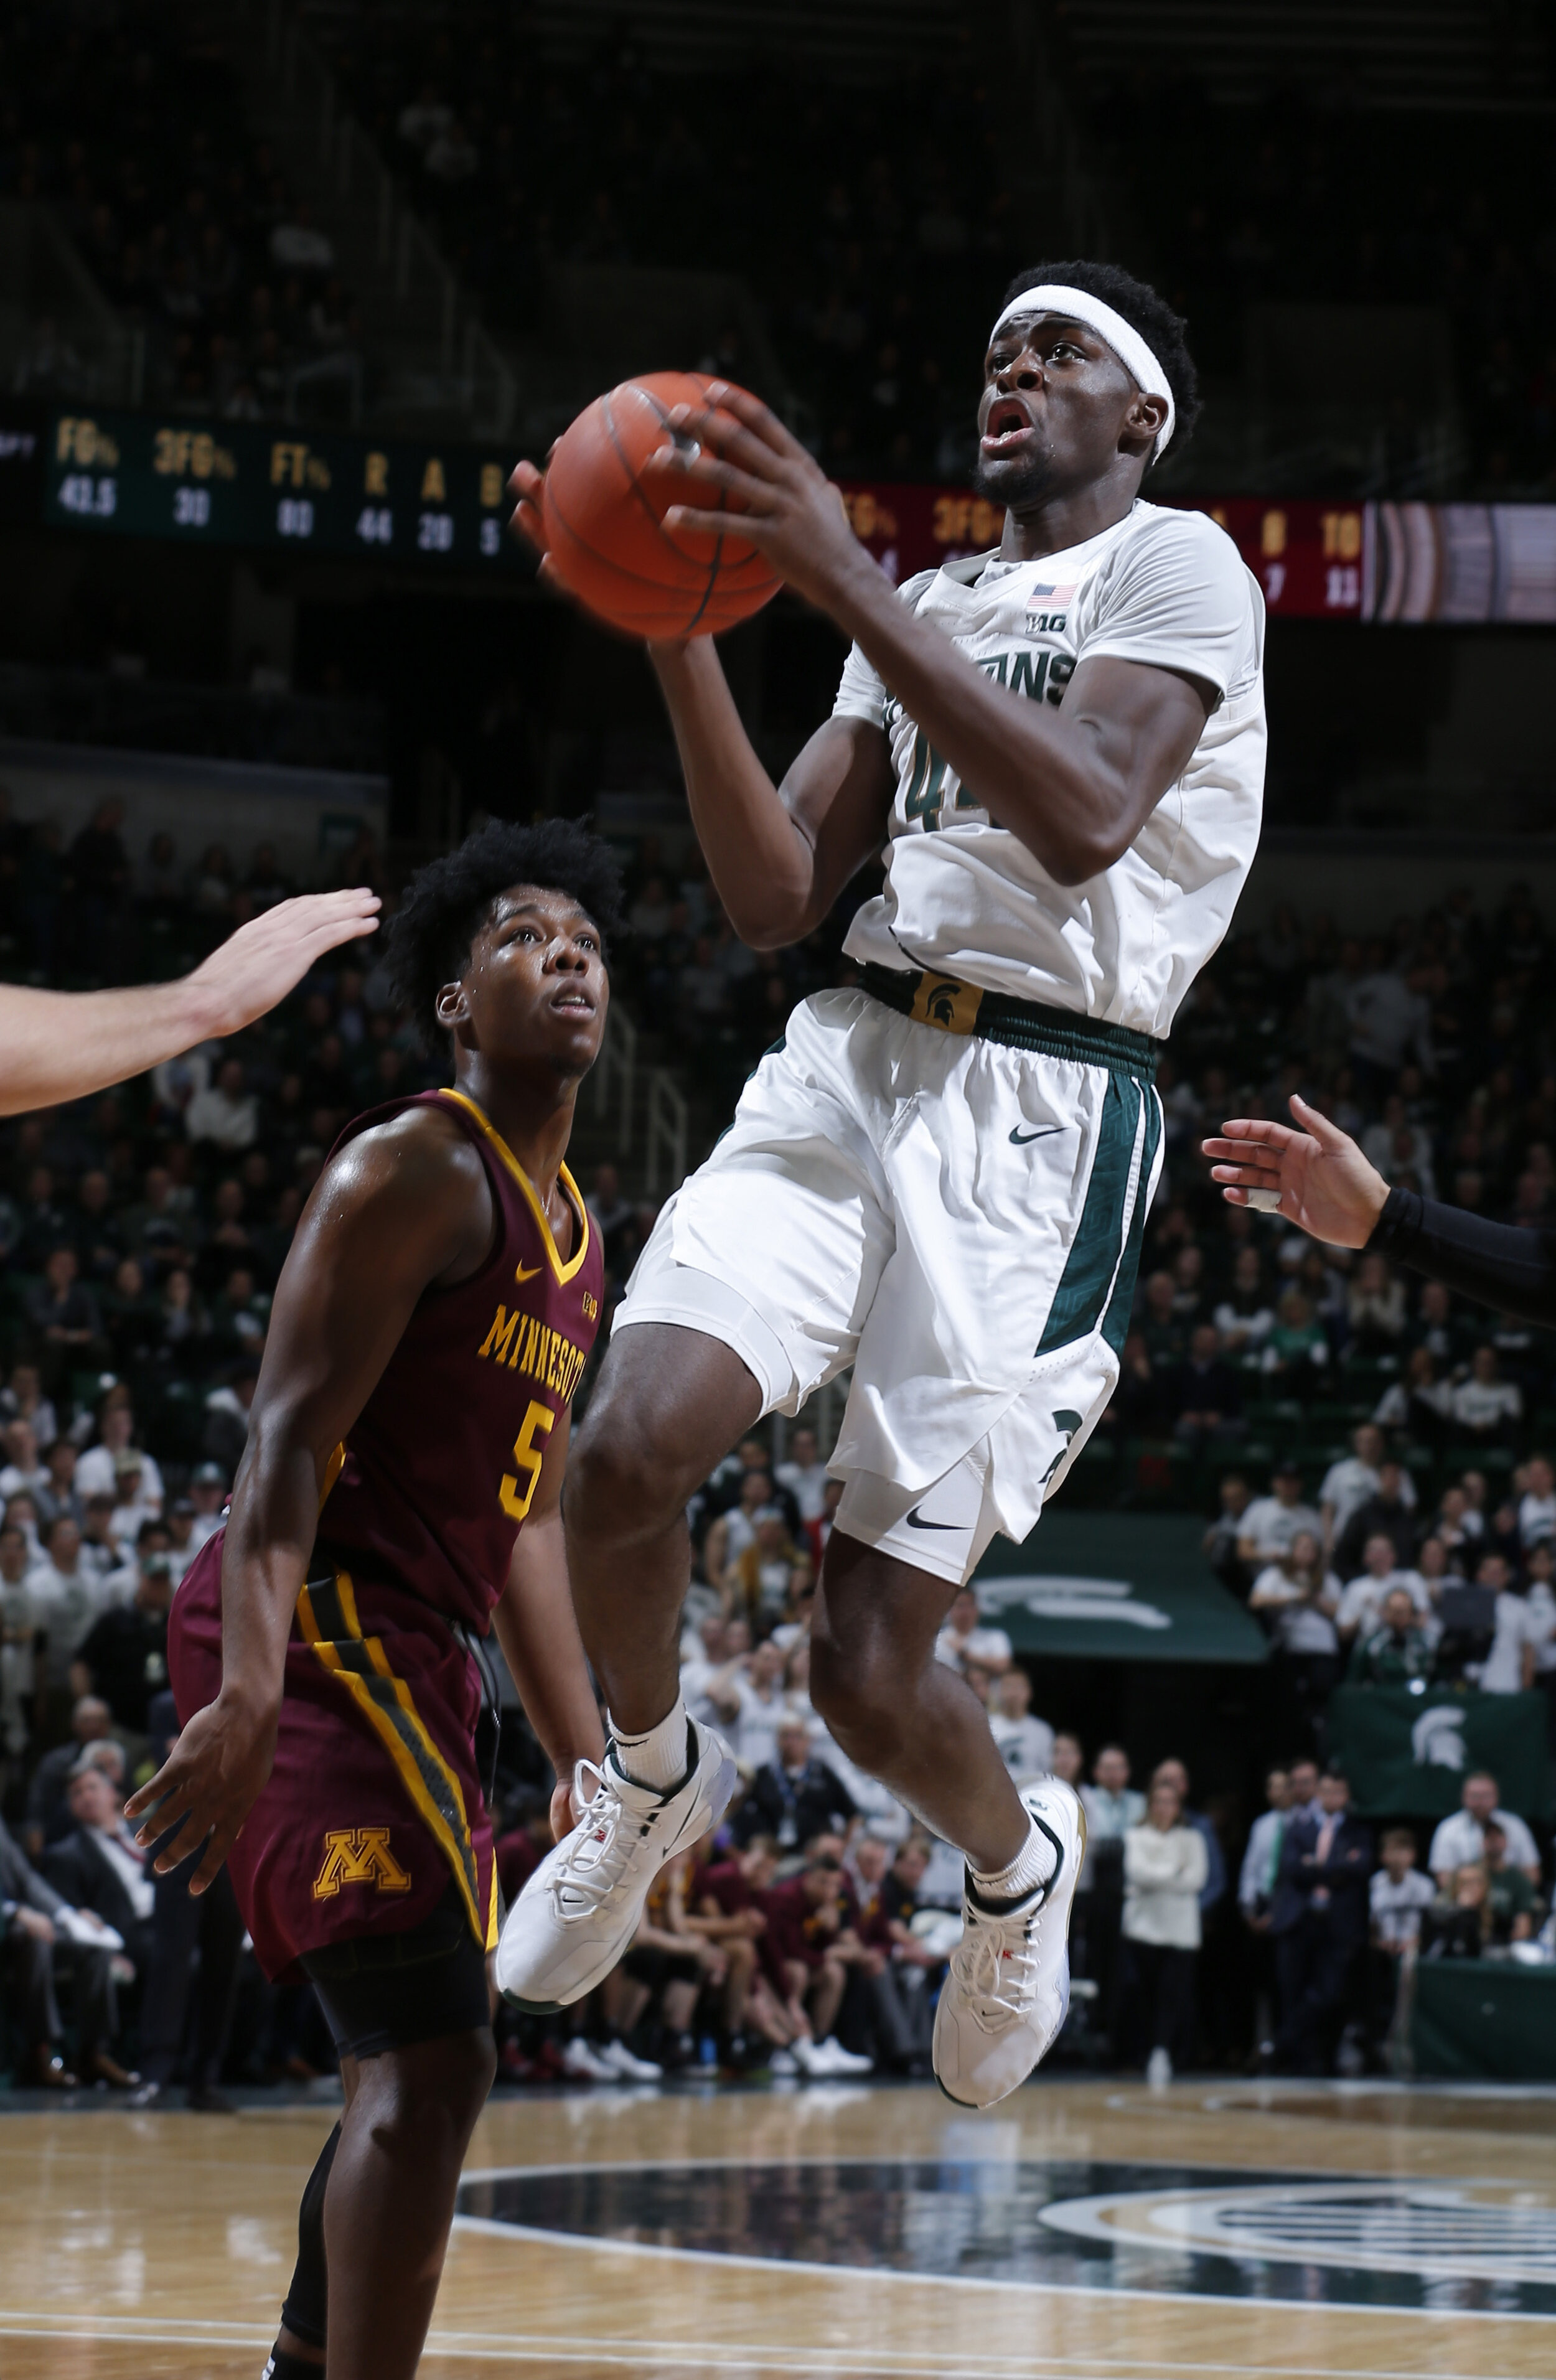 What To Make Of The Parity In College Basketball The Daily